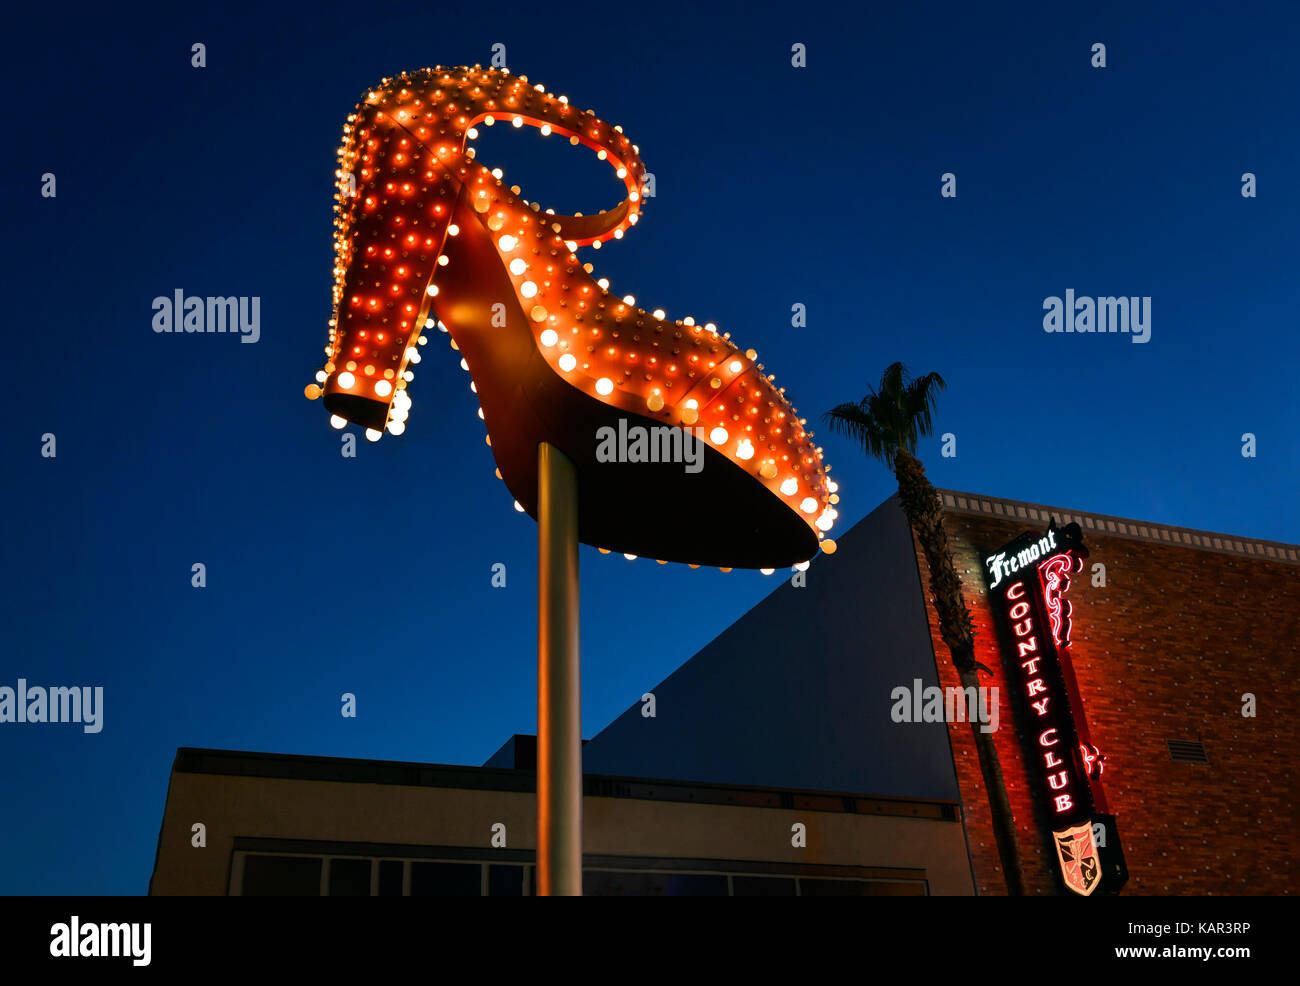 Neon Light Woman's High Heel Shoe in the Fremont Distict - Stock Image